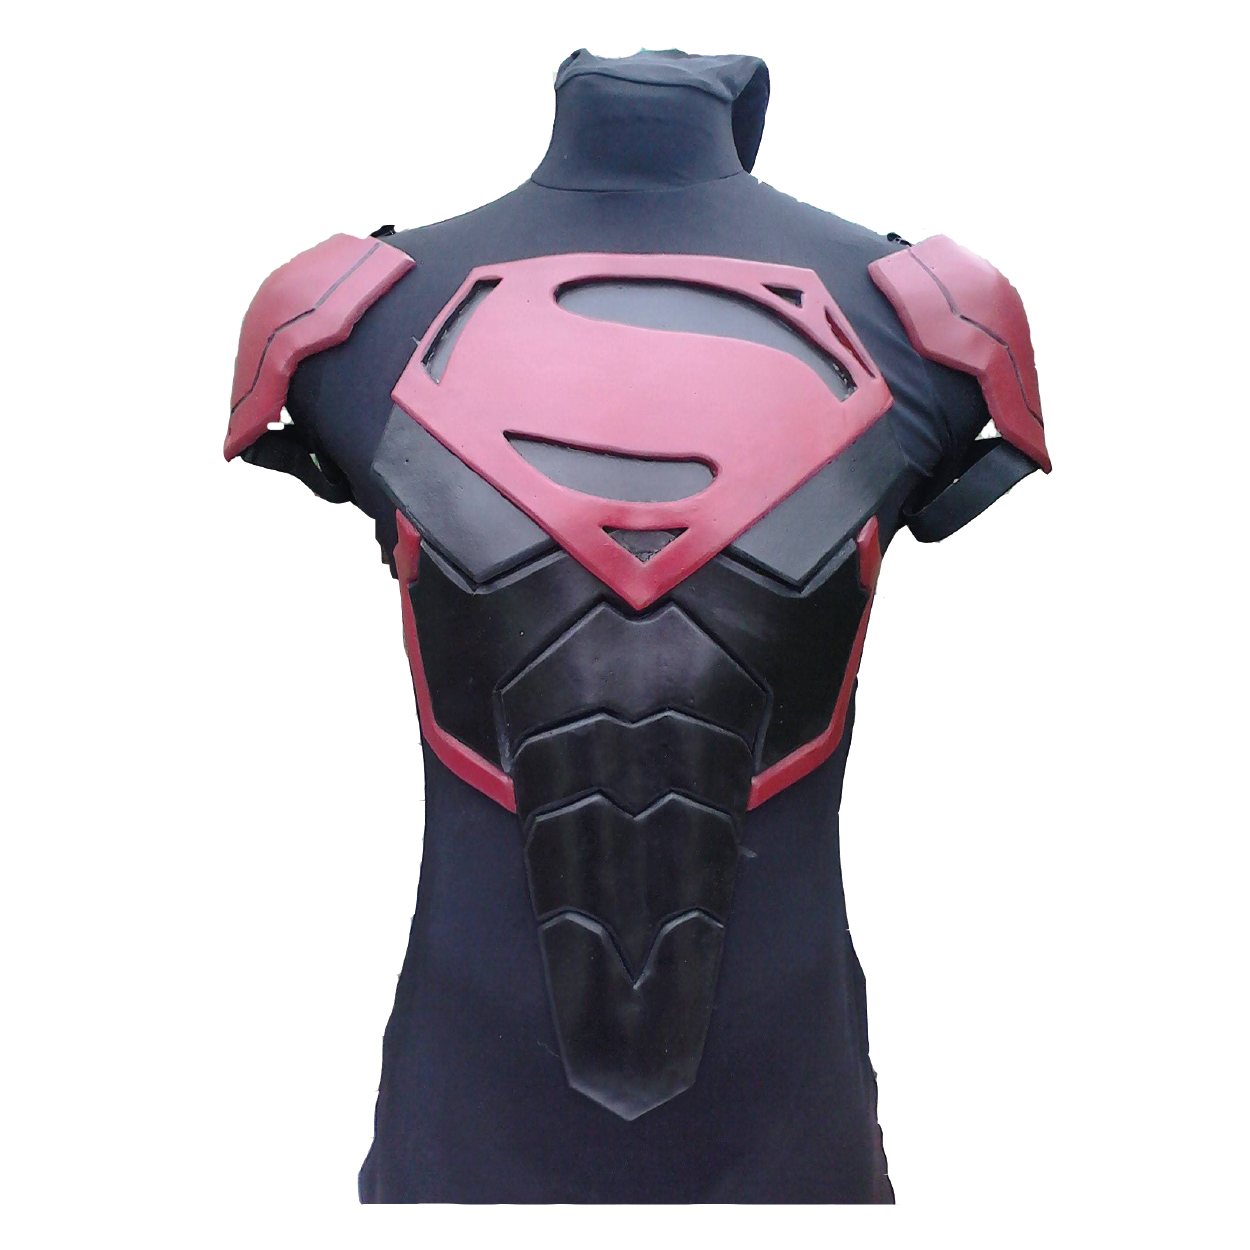 Black Superman Foam Cosplay Costume